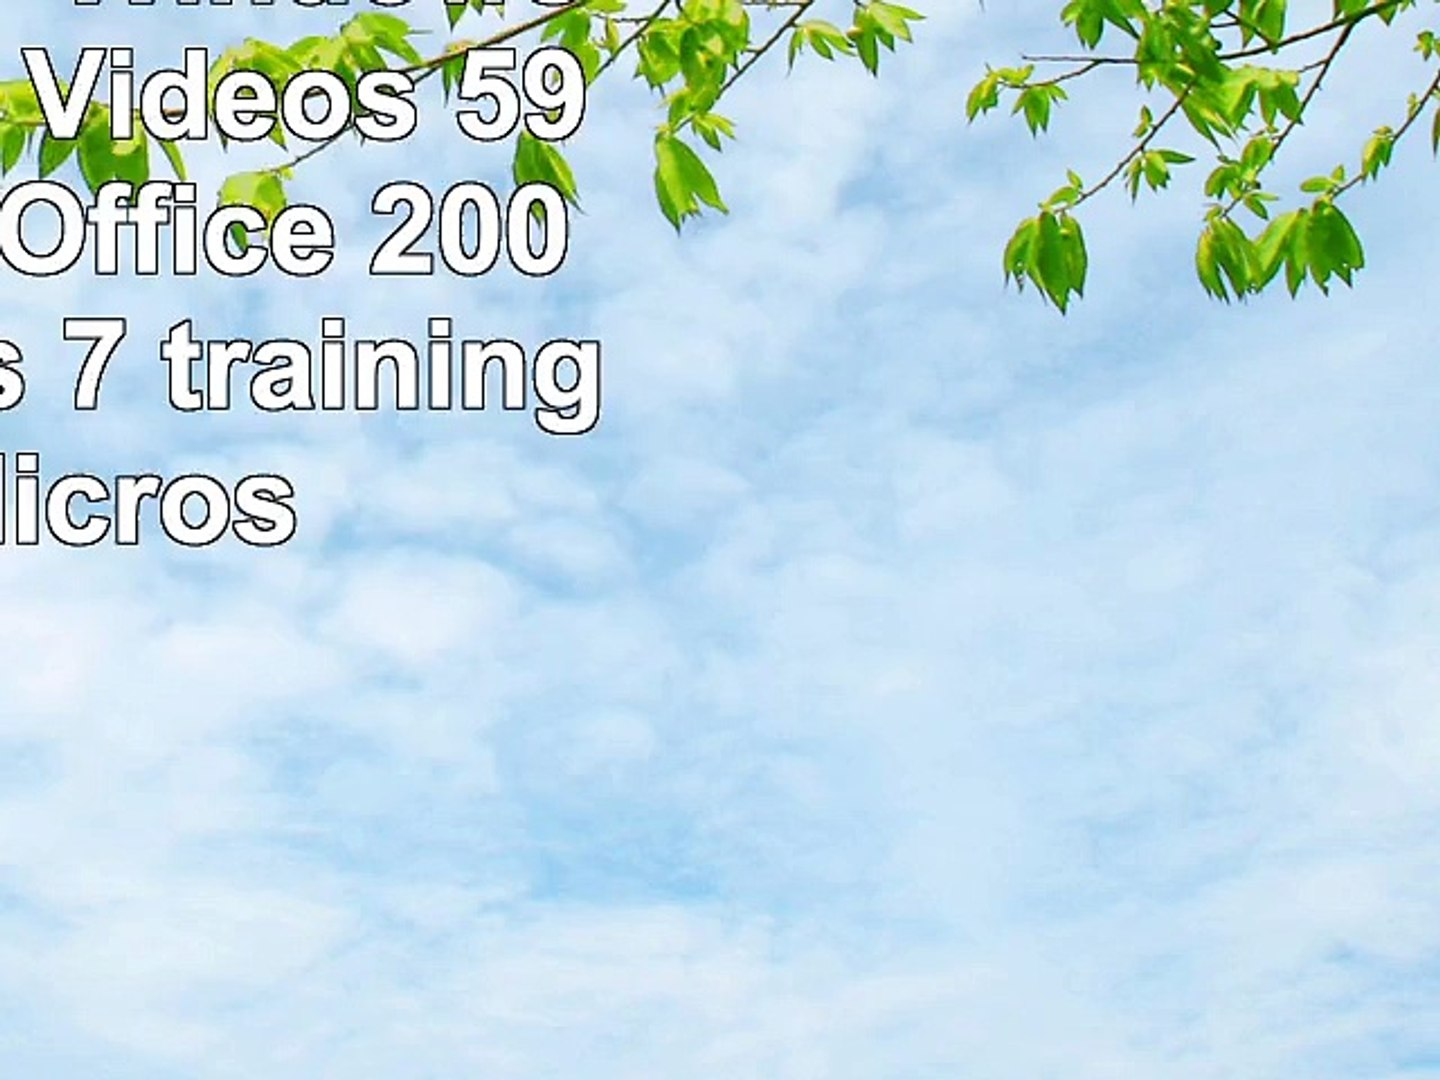 Office 2007  Windows 7 Training Videos  59 Hours of Office 2007  Windows 7 training by